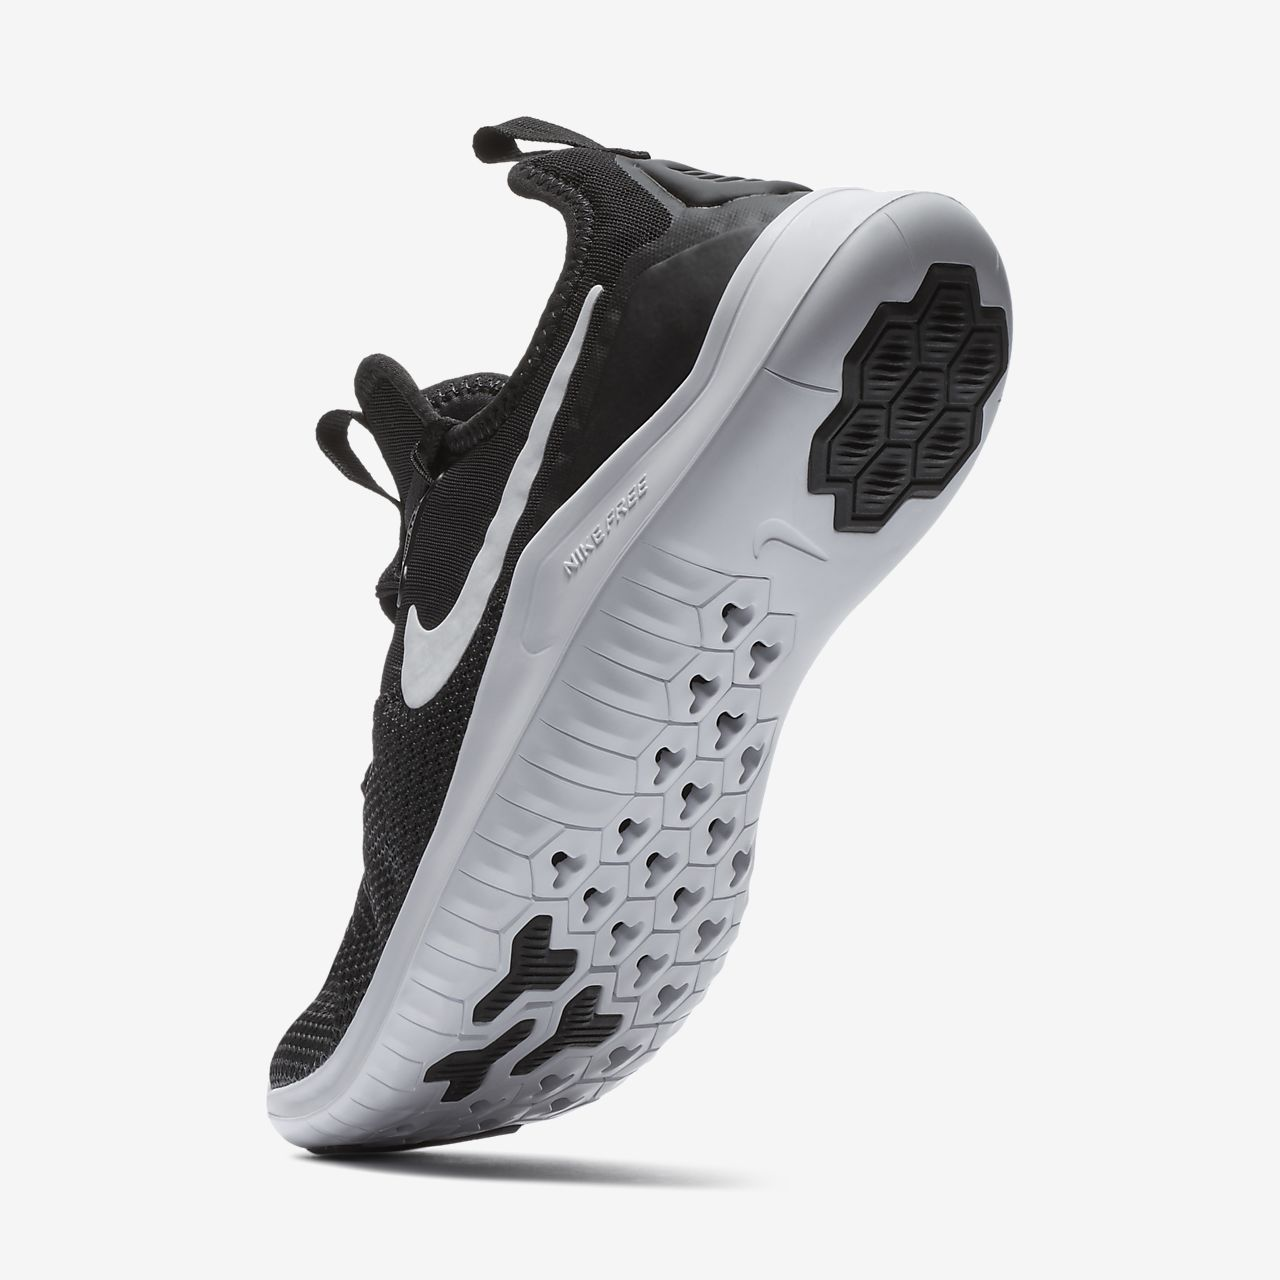 92755b2d941 Nike Free TR8 Women s Gym HIIT Cross Training Shoe. Nike.com NZ